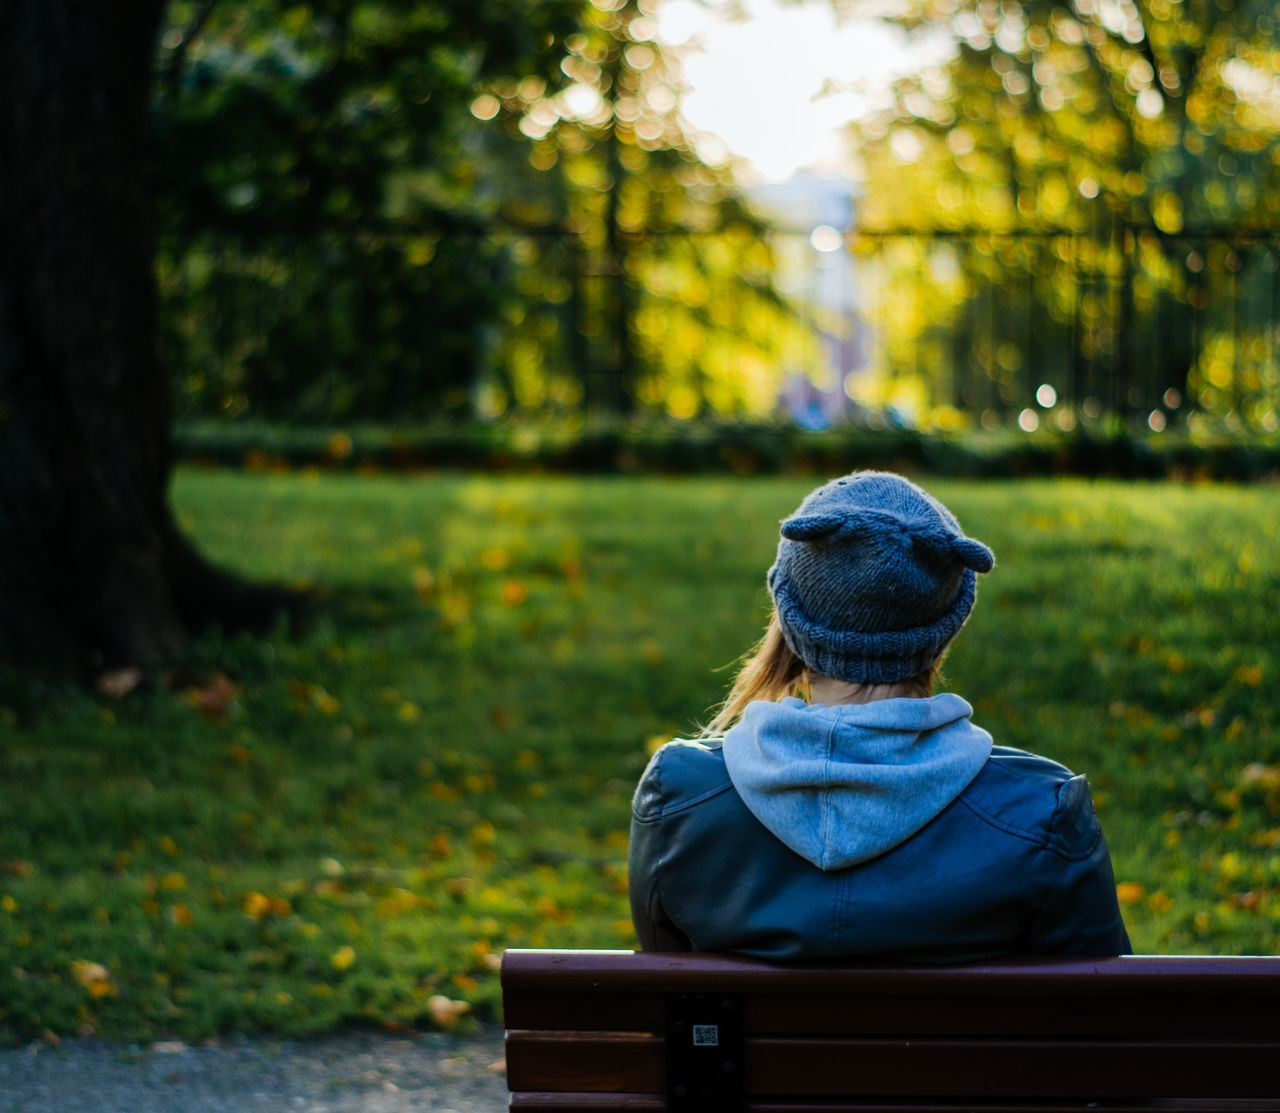 Rear View Sitting Tree Bench One Person Loneliness Autumn Nature Relaxation Outdoors People Landscape Grass Day Adult